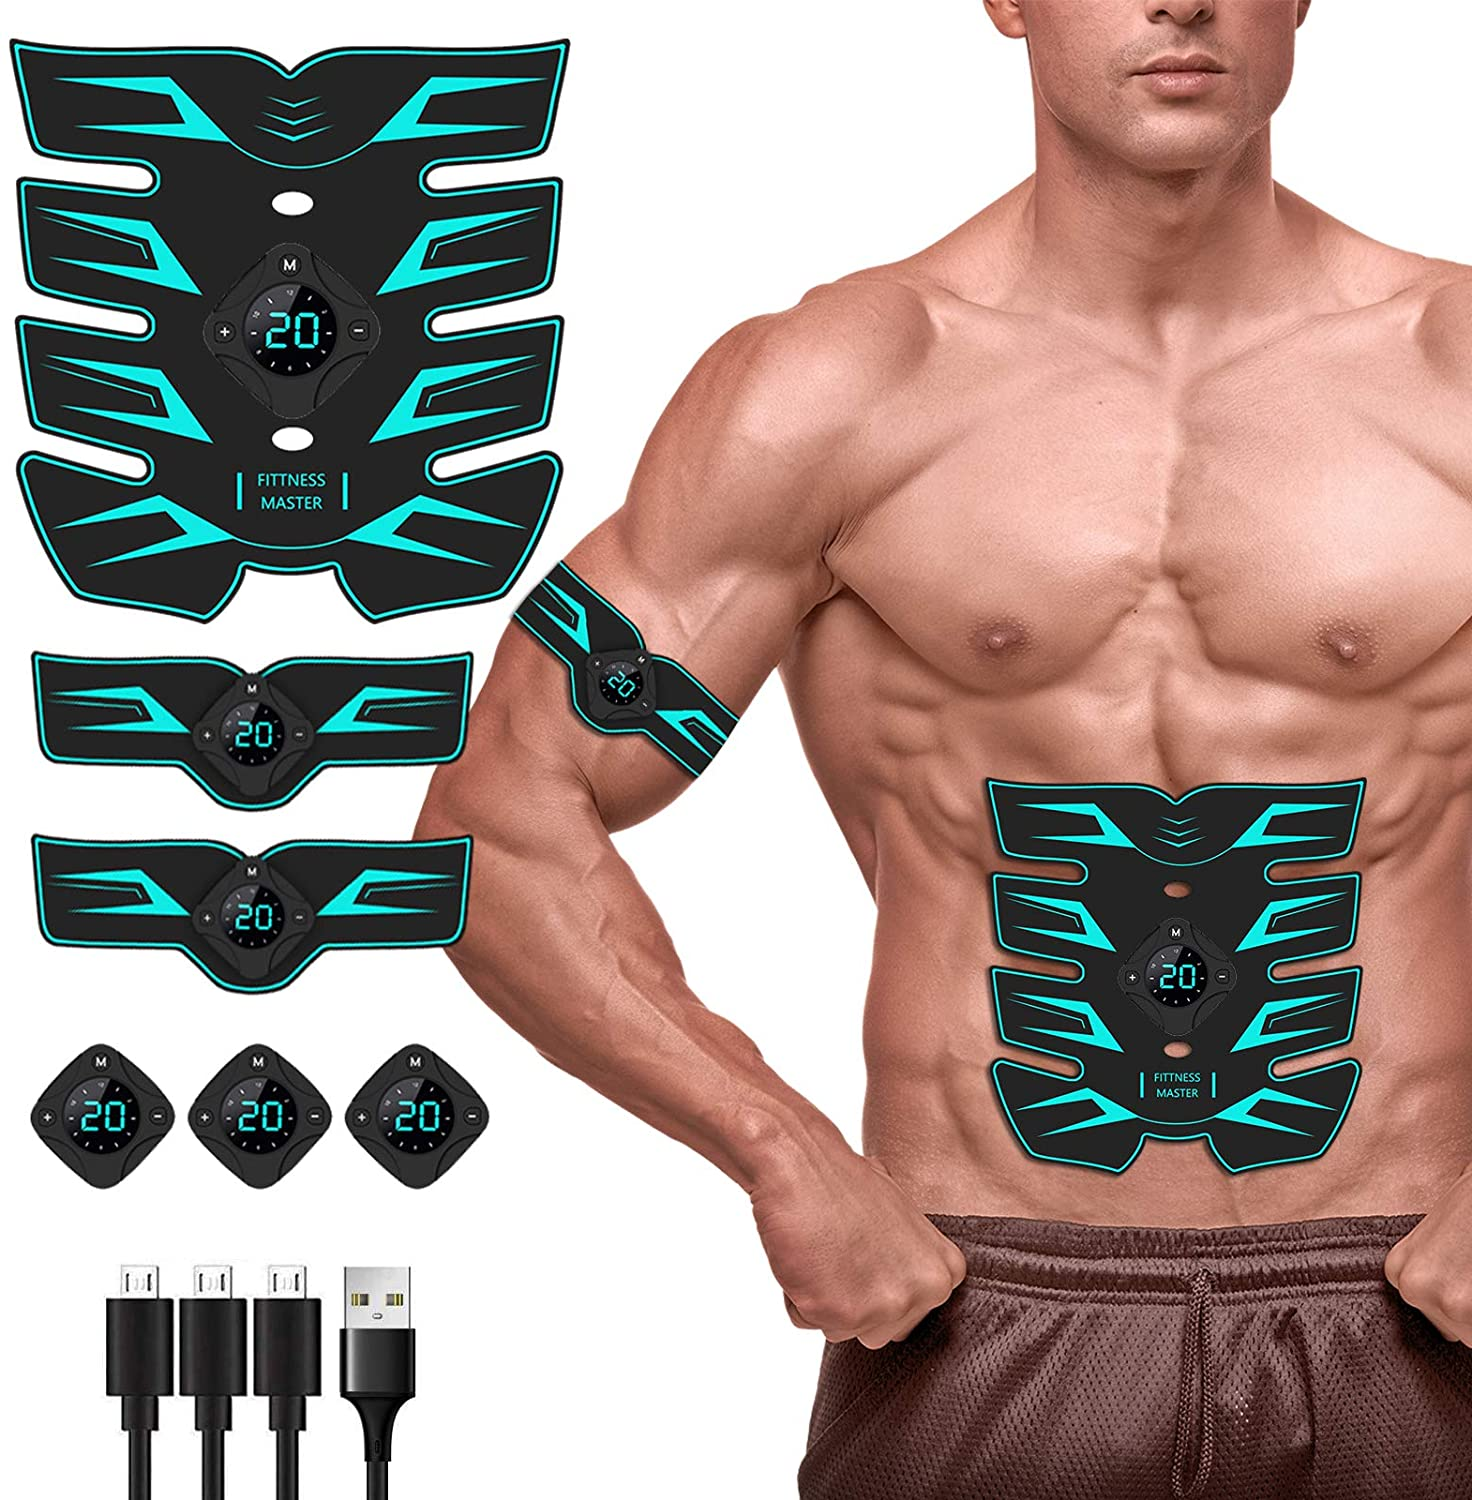 10: Abs Stimulator for Women, 2021 Newest Electric Muscle Stimulator